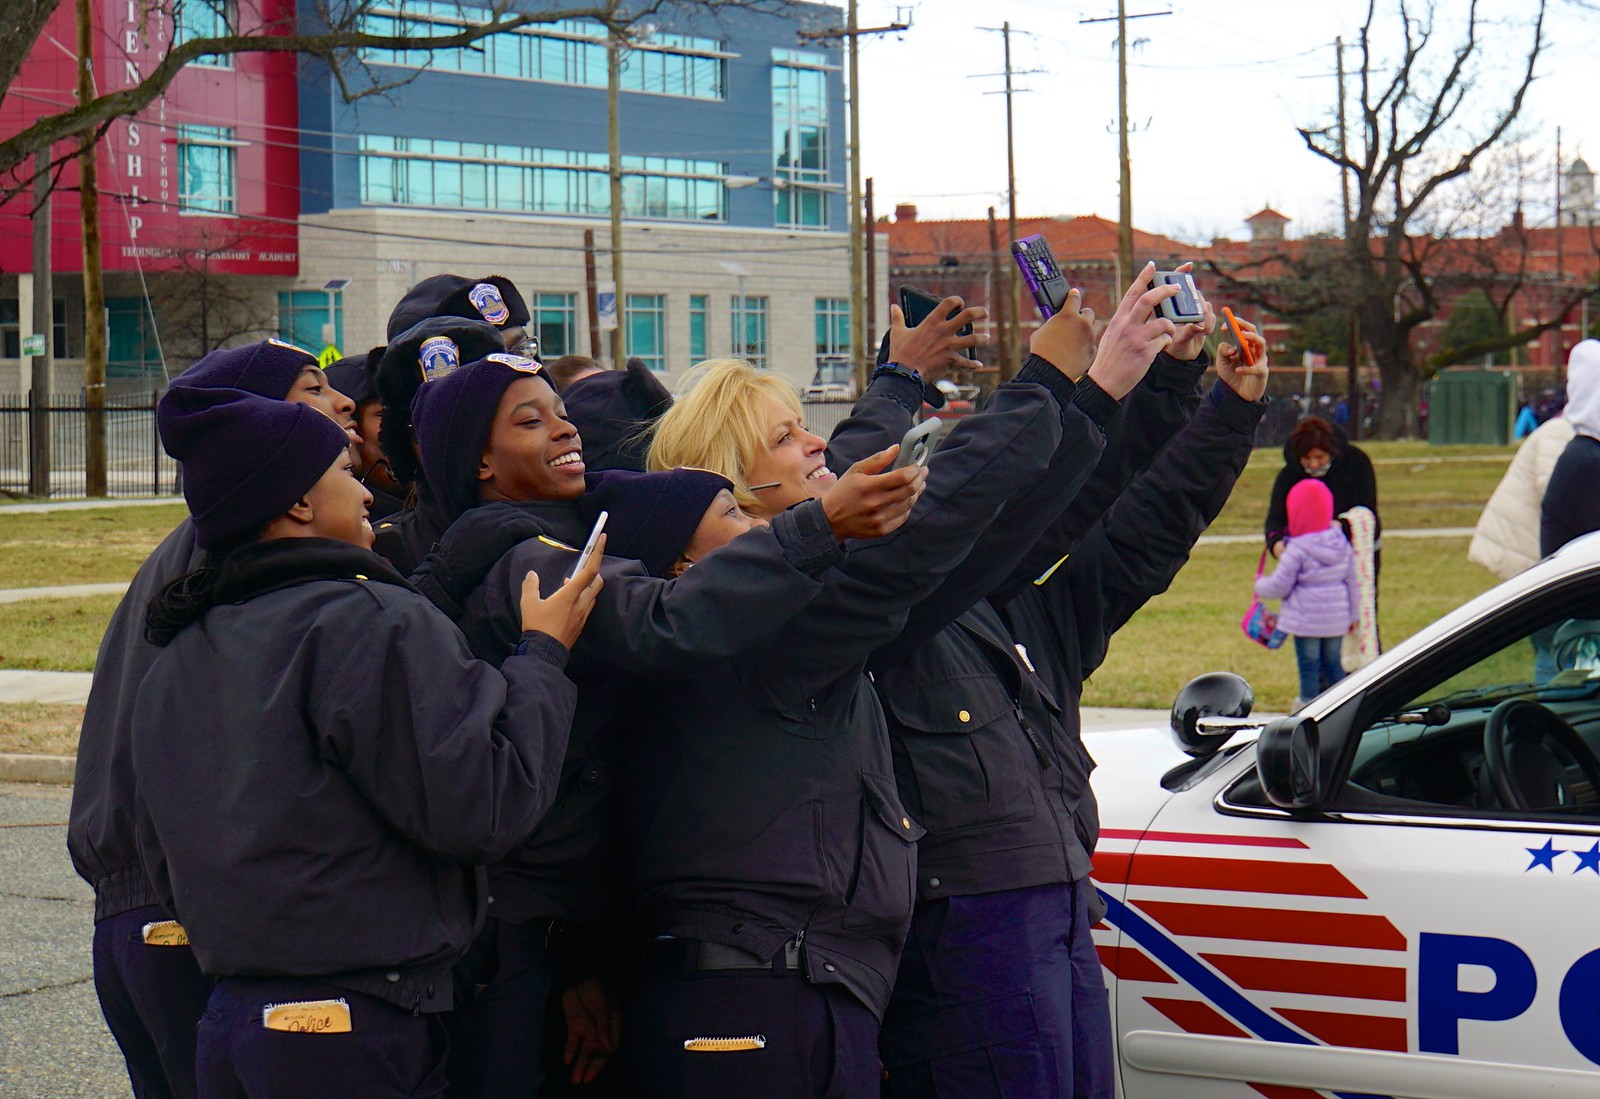 MLK Parade 2015 Anacostia, Washington, DC USA 51617